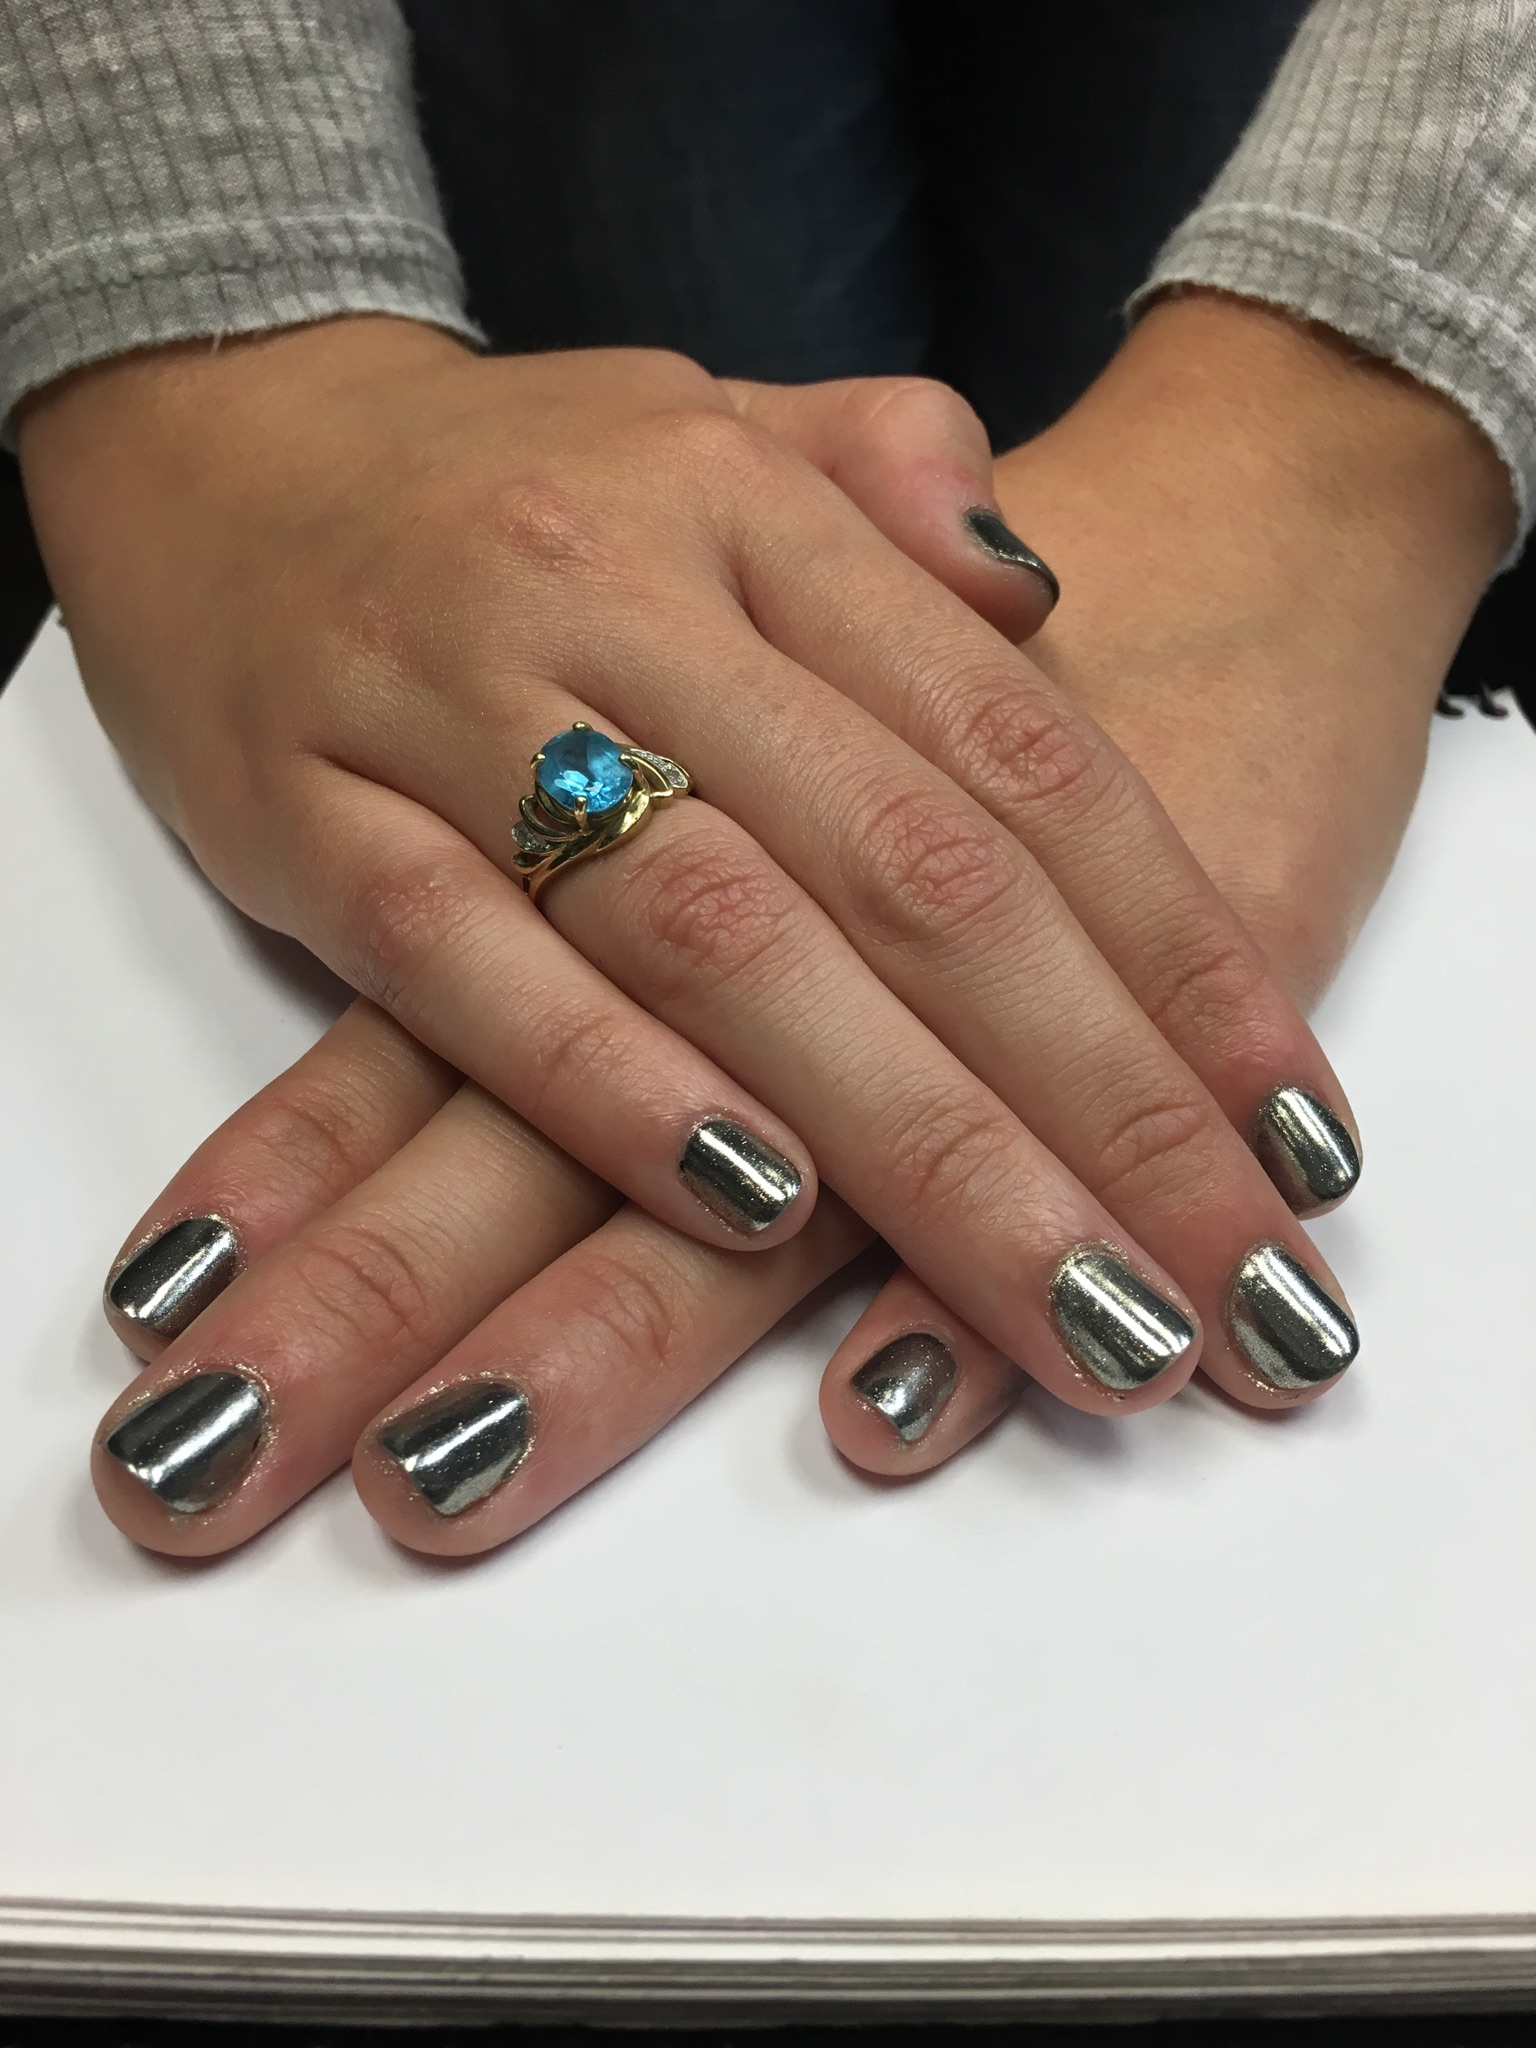 The newest trend in nails is now available at J. Russell the Salon!